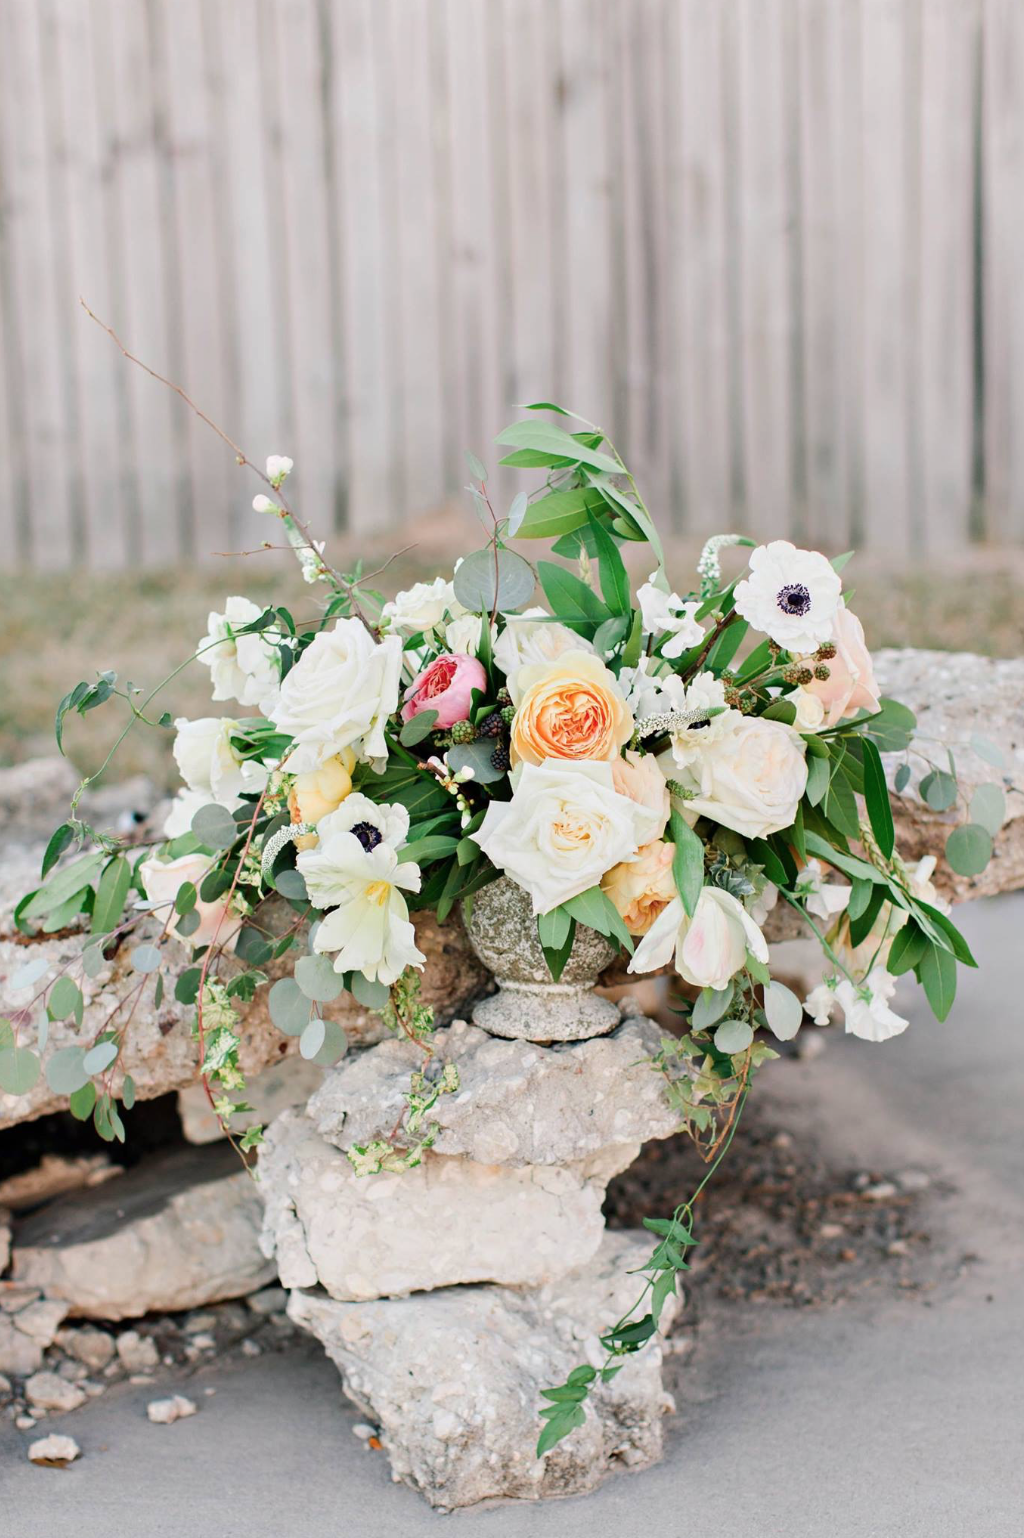 Compote floral arrangement with cement base by Maxit Flower Design in Houston, TX.